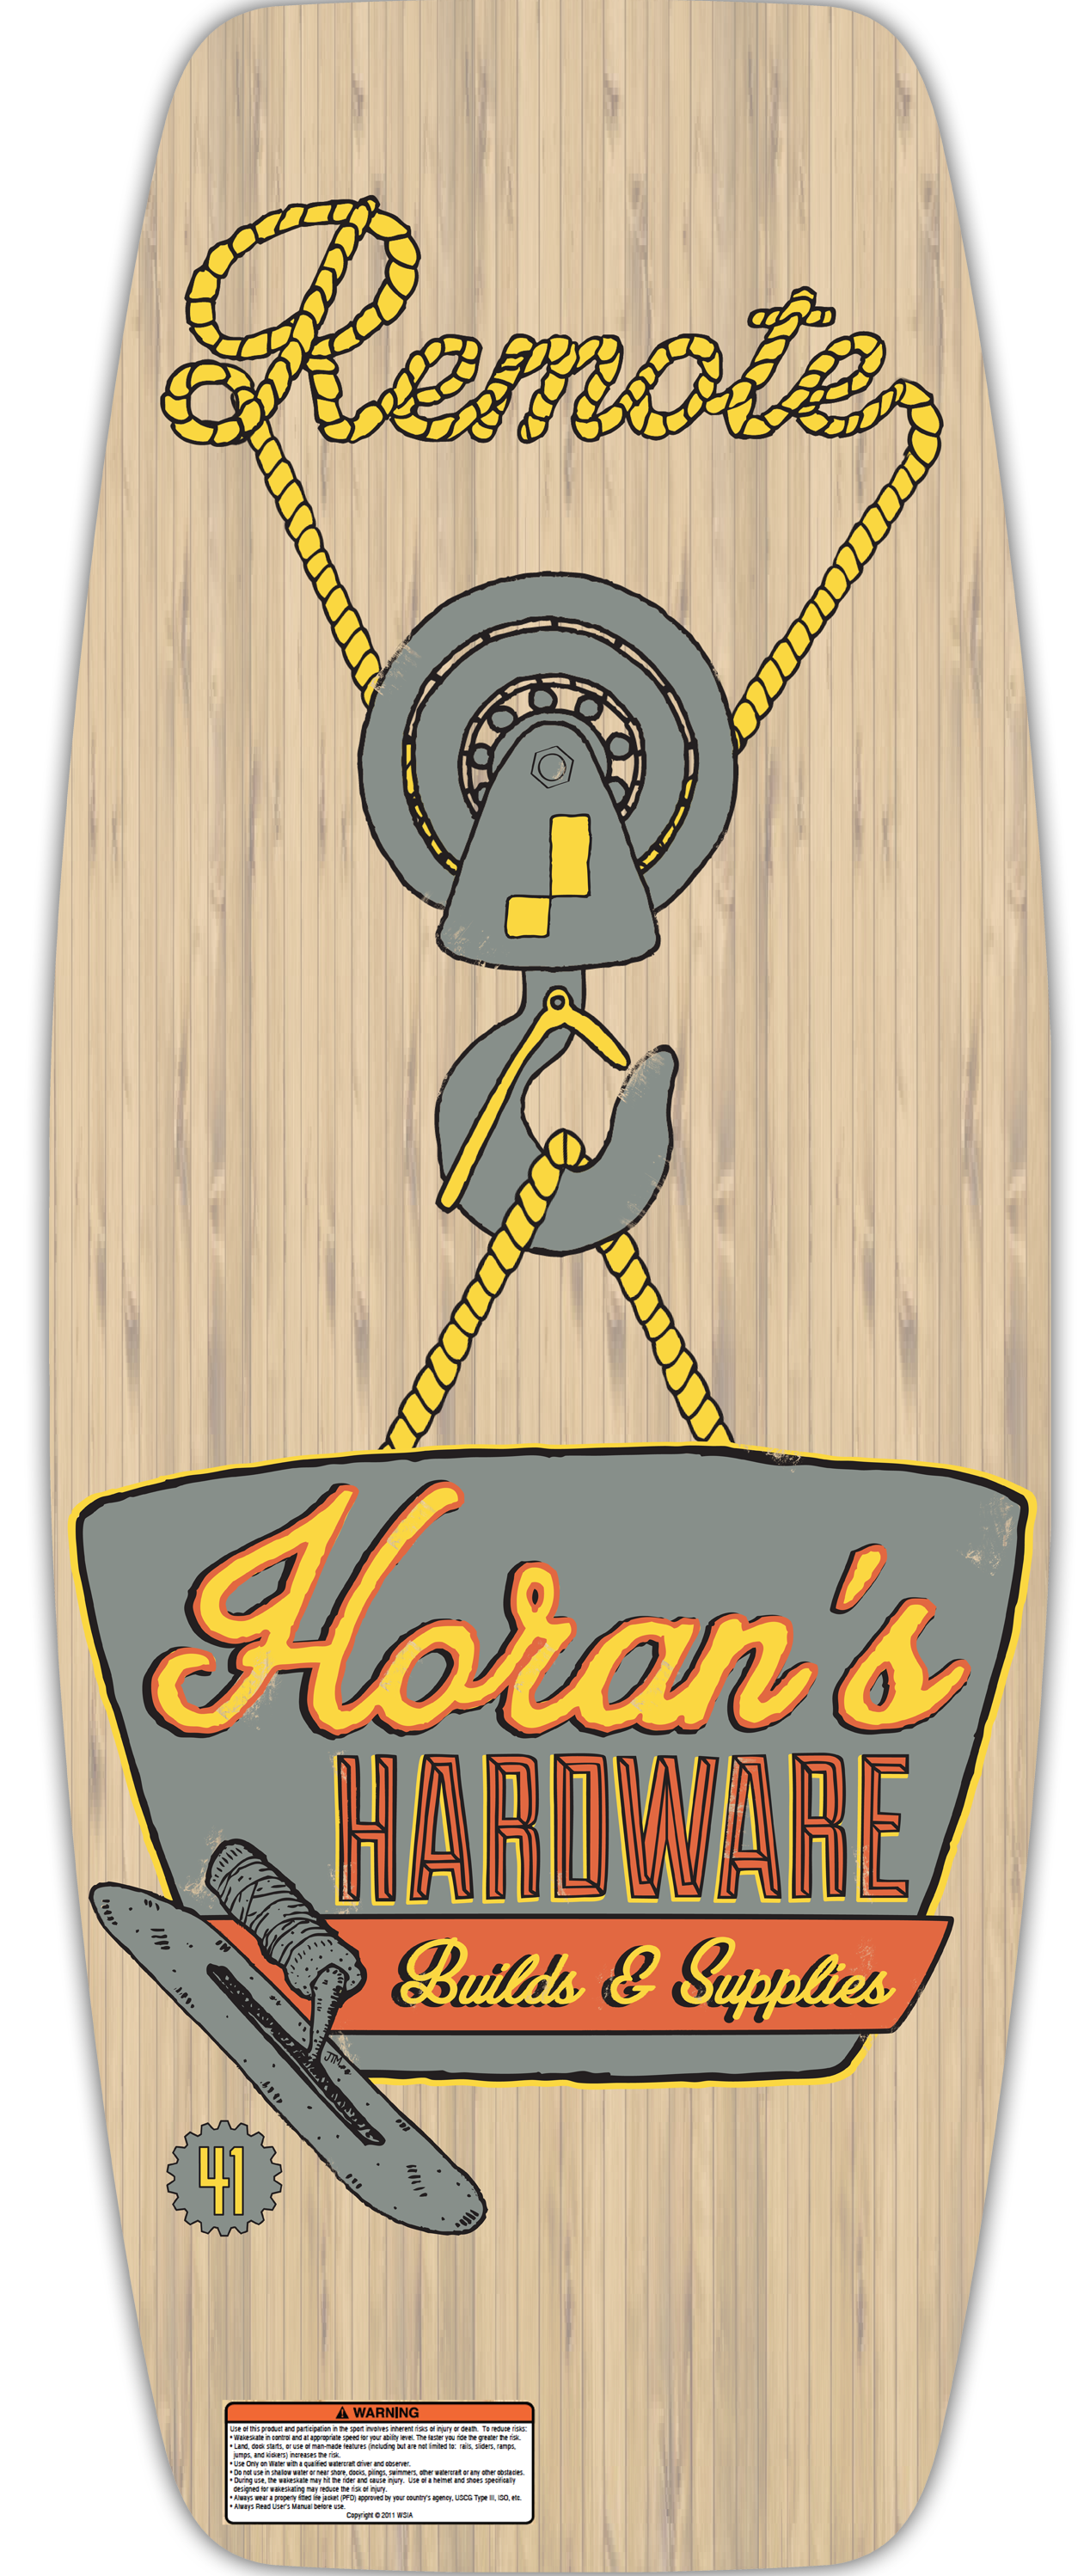 View Horan's Hardware